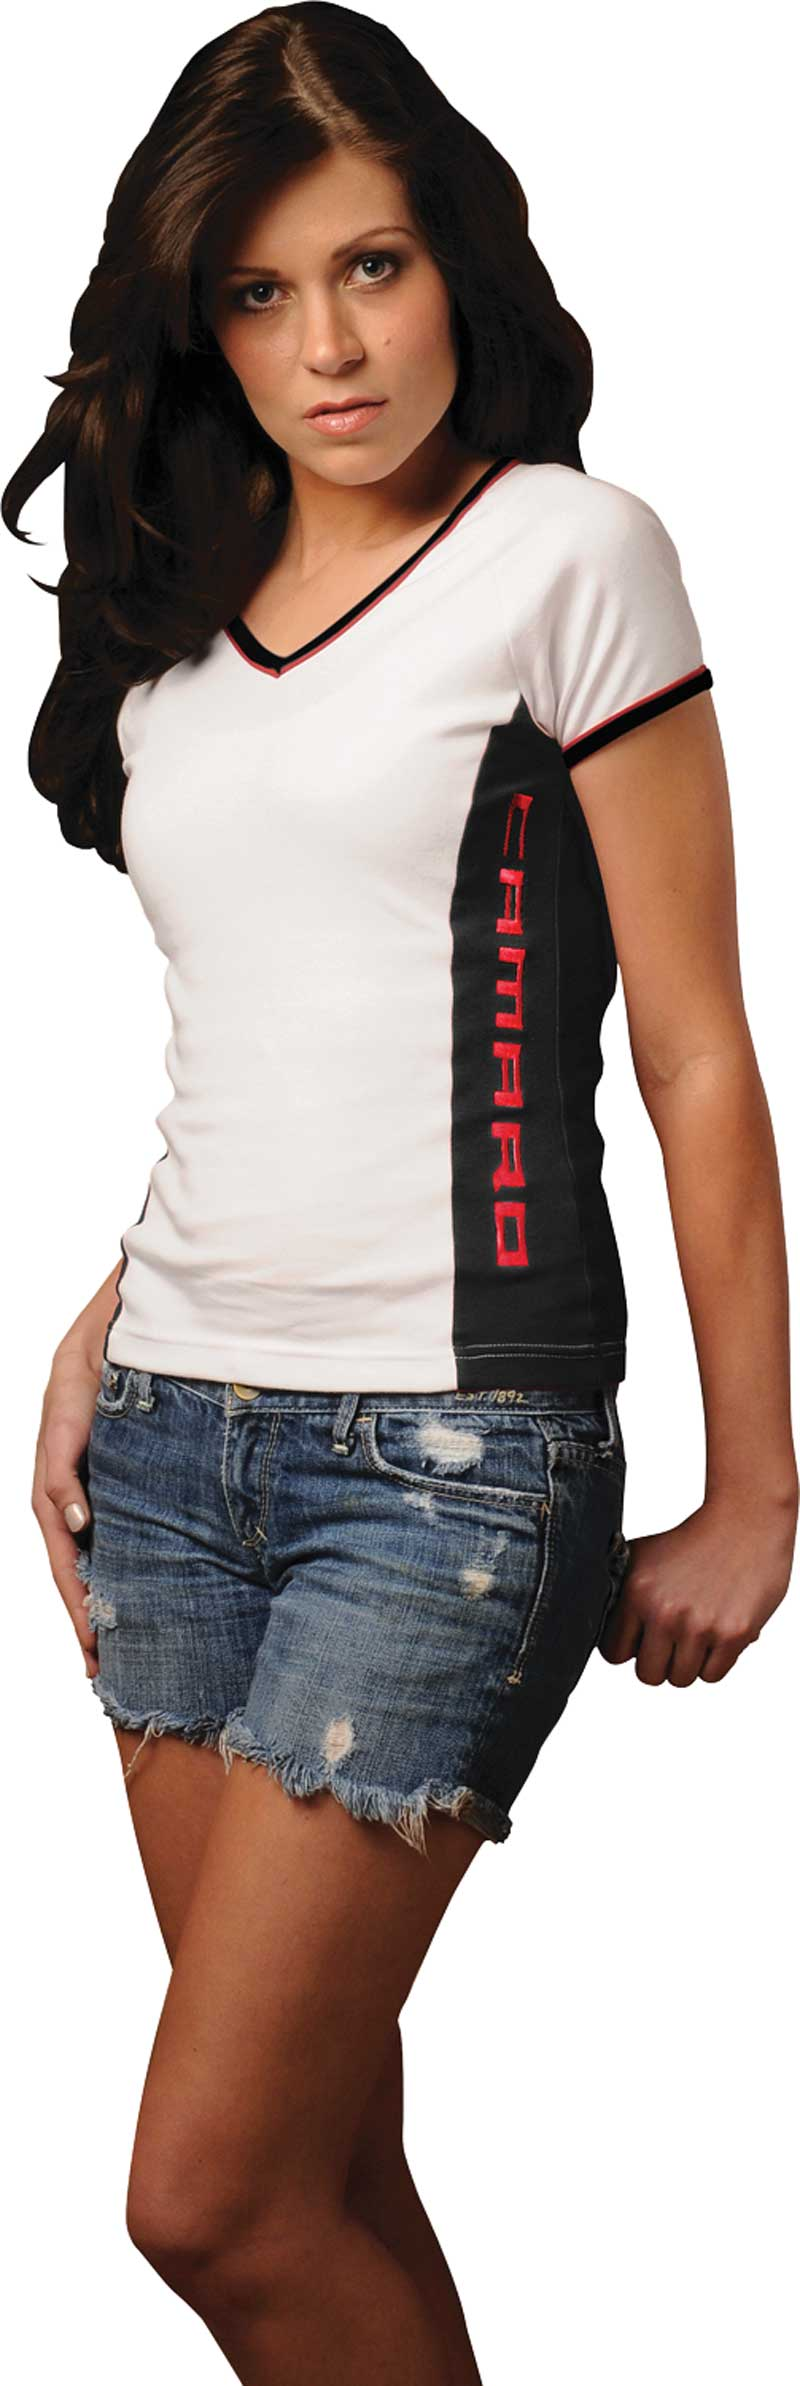 X-Large White Ladies V-Neck T-Shirt with Black Side Panel and Red Block Style Camaro Lettering